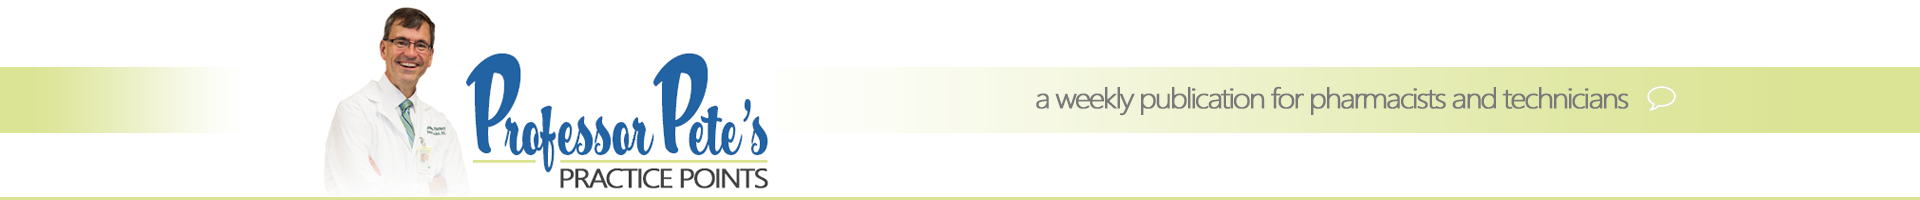 Prof Petes practice points